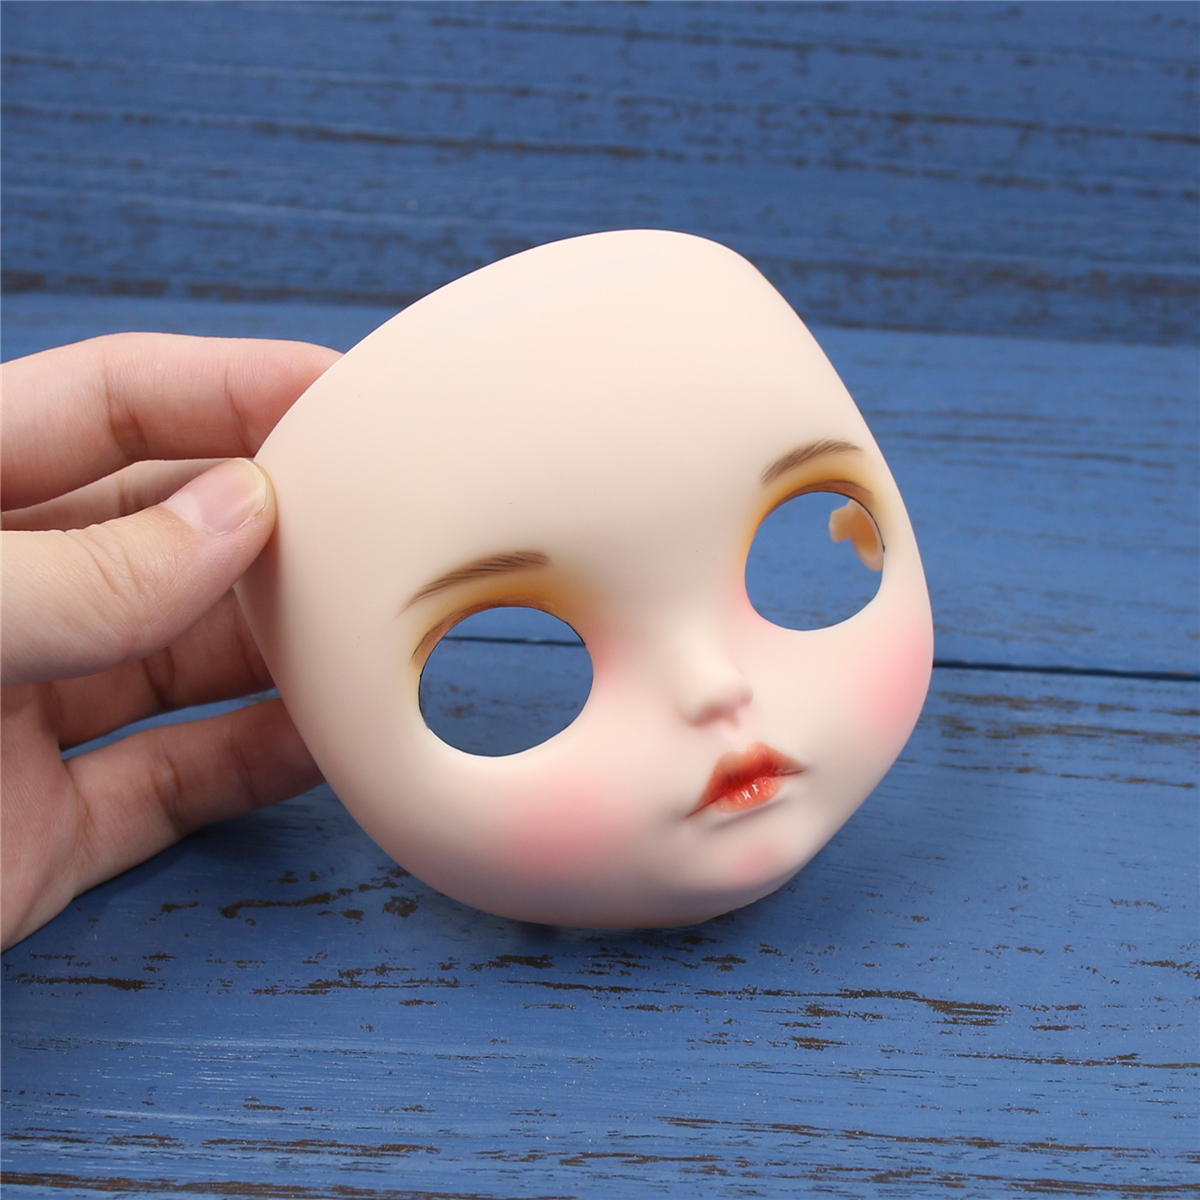 1/6 Toy Face Factory Blyth Doll Customized Faceplate Lips Carves Eyebrow Matte Face Including The Back Plate And Screws